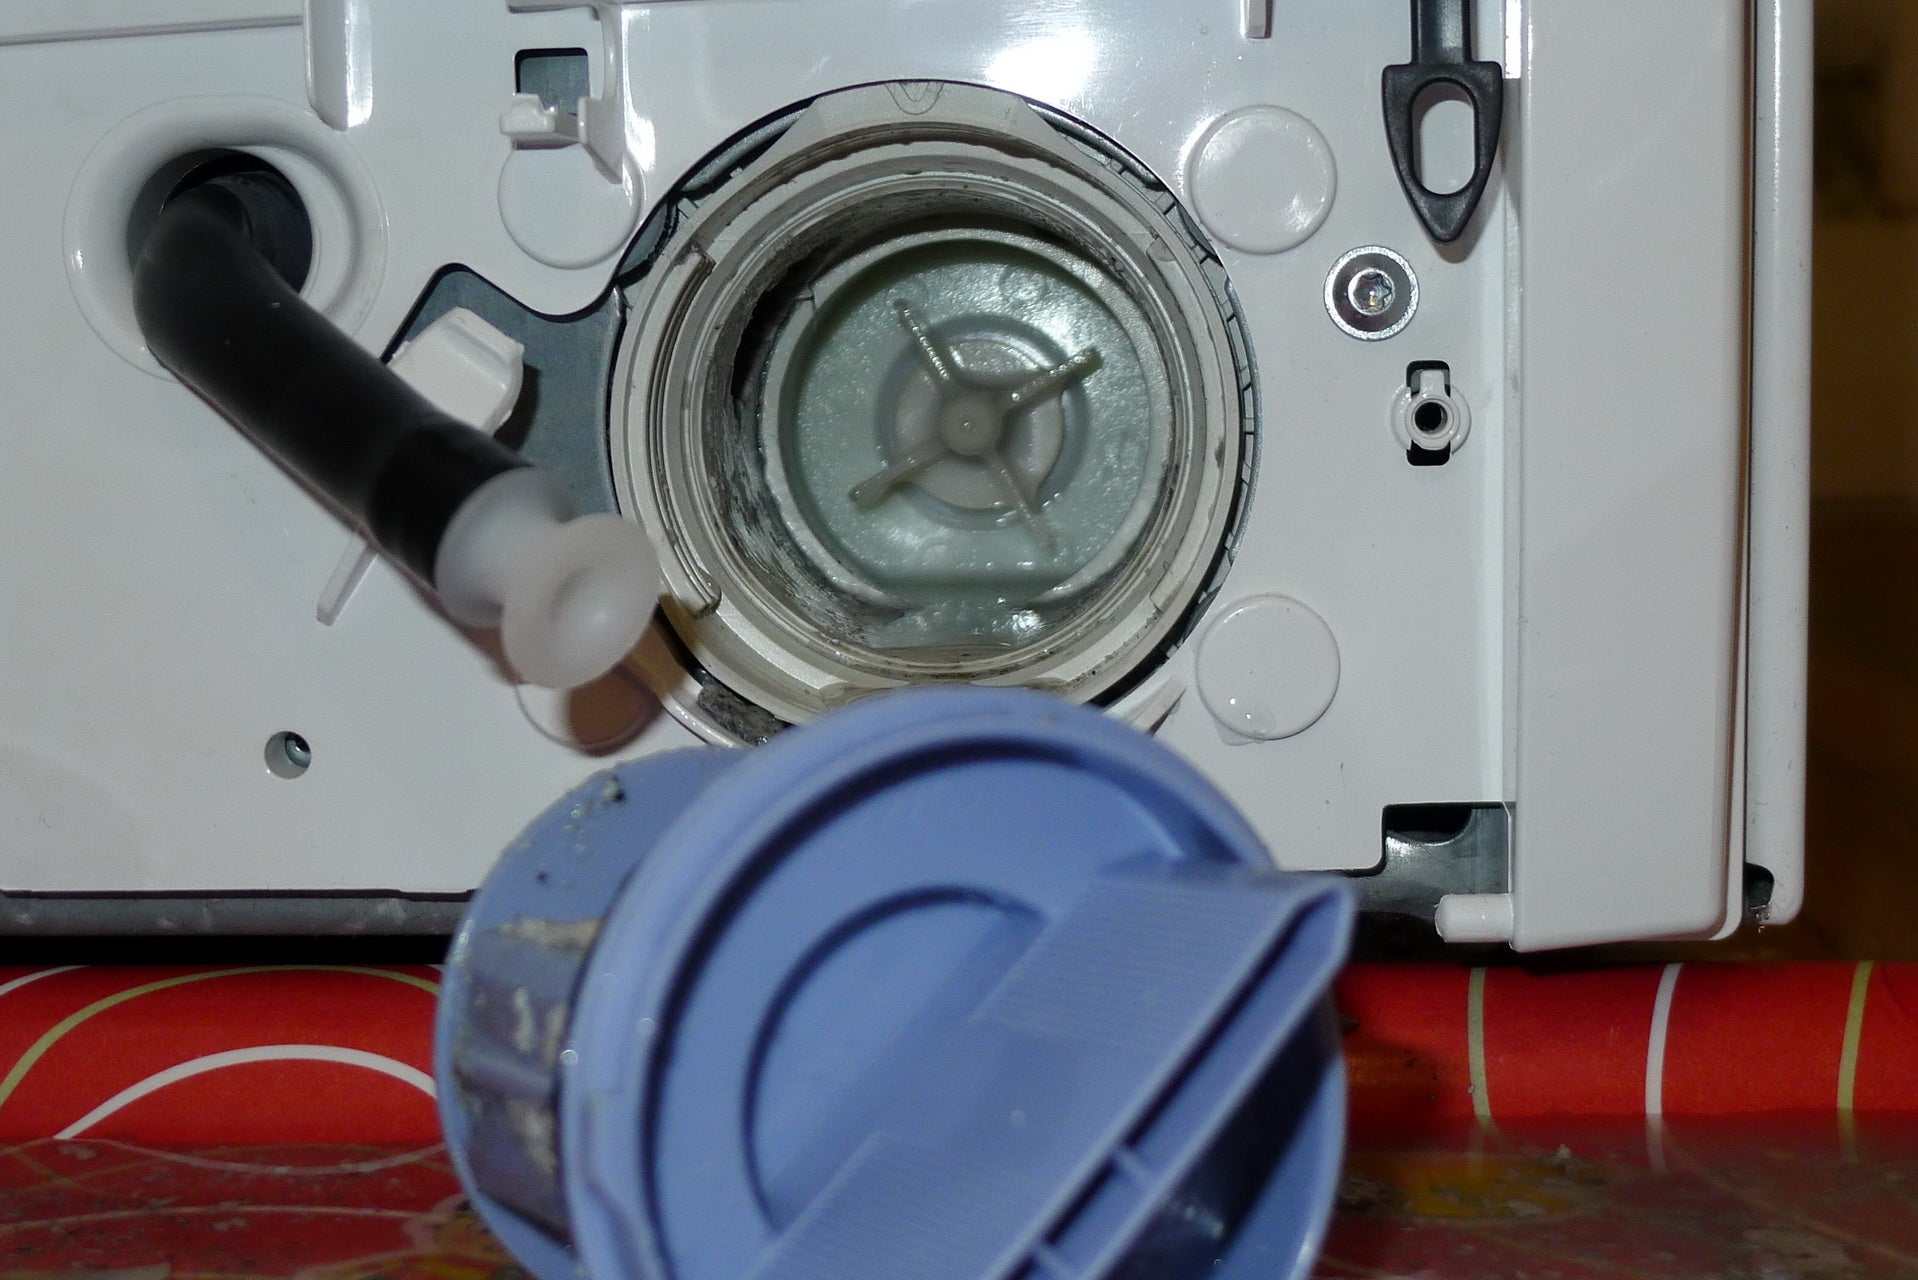 Washing machine won't drain? Here's how to unblock it